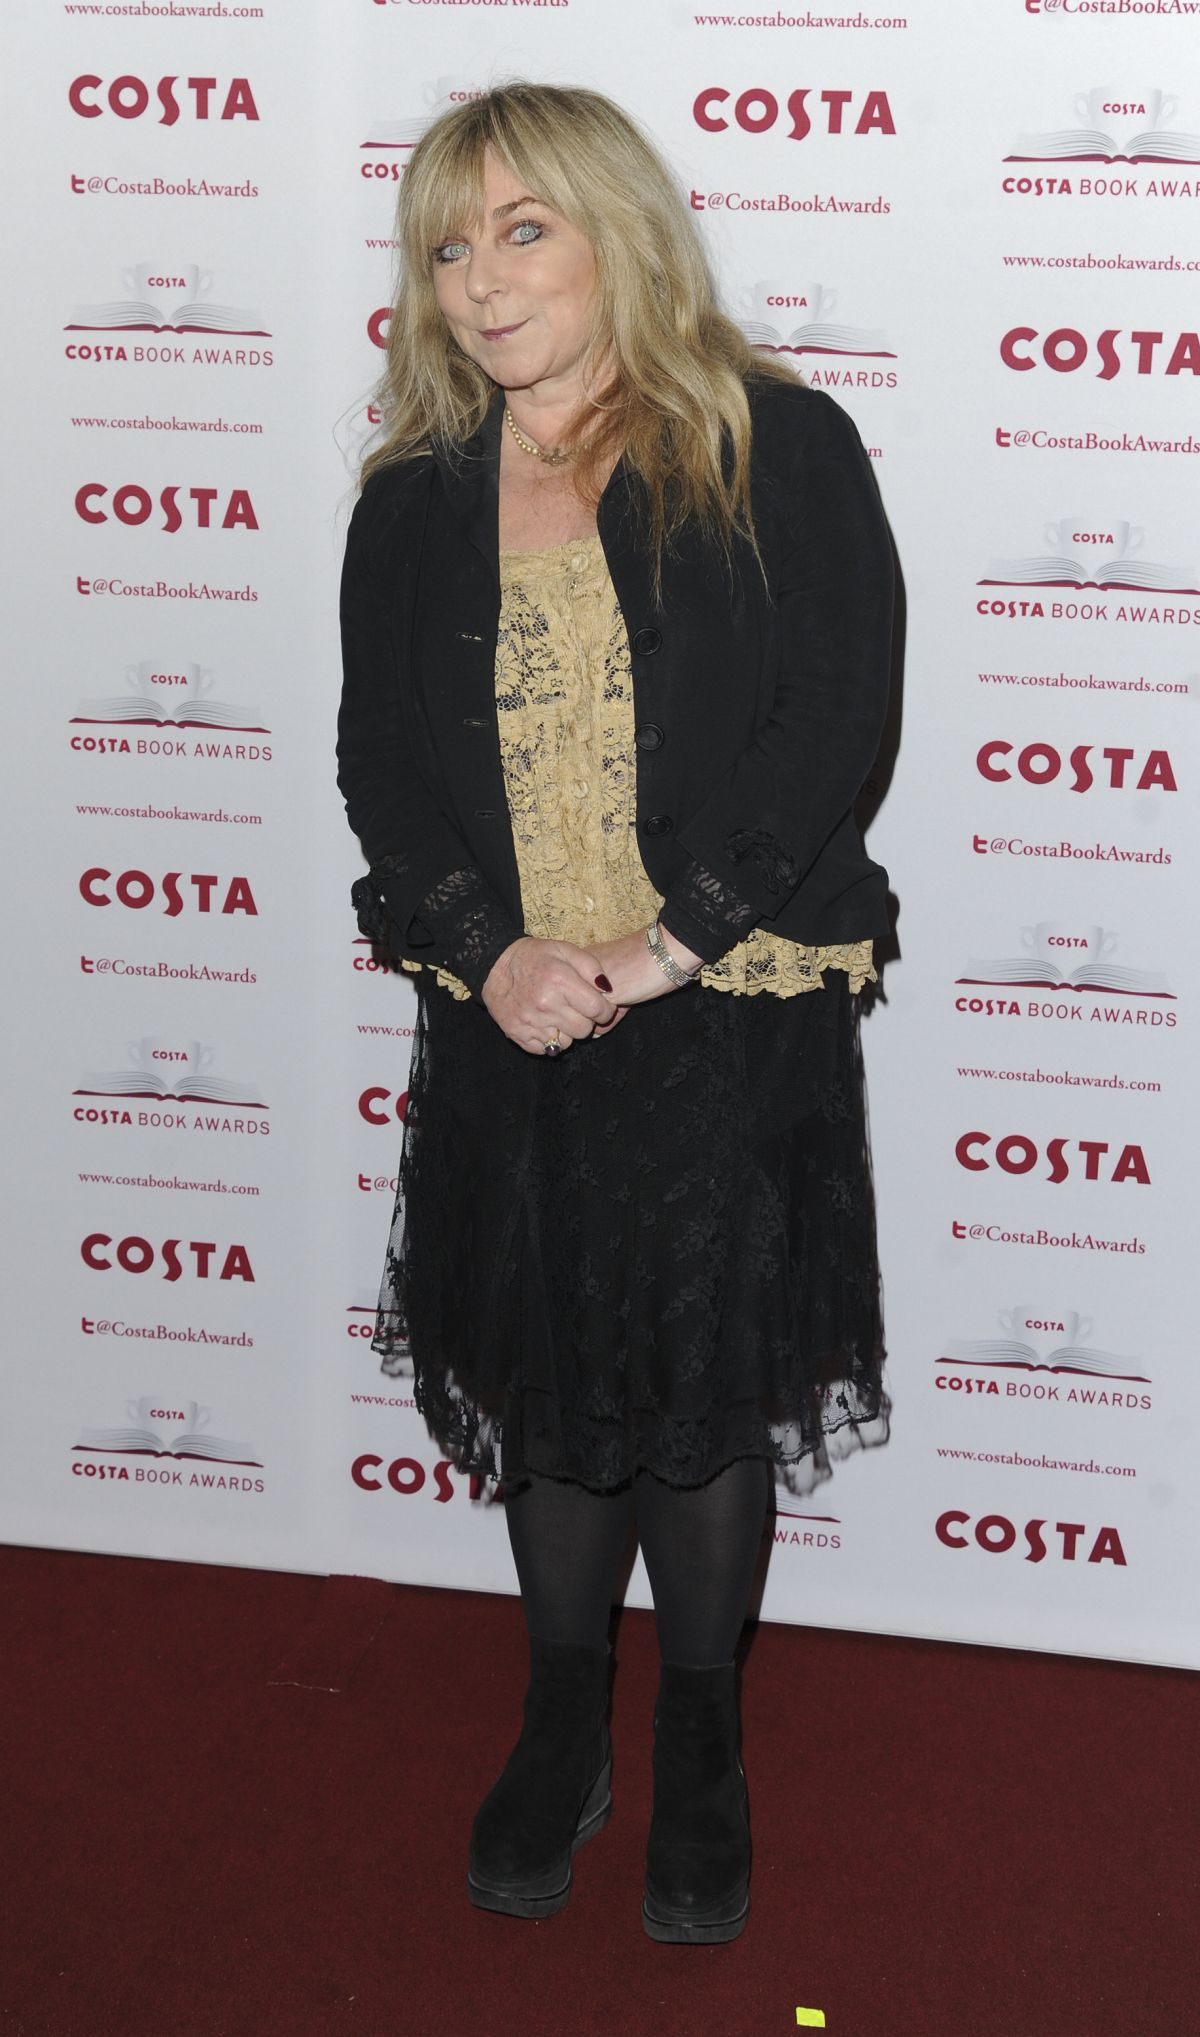 HELEN LEDERER at Costa Book Awards in London 01/31/2017